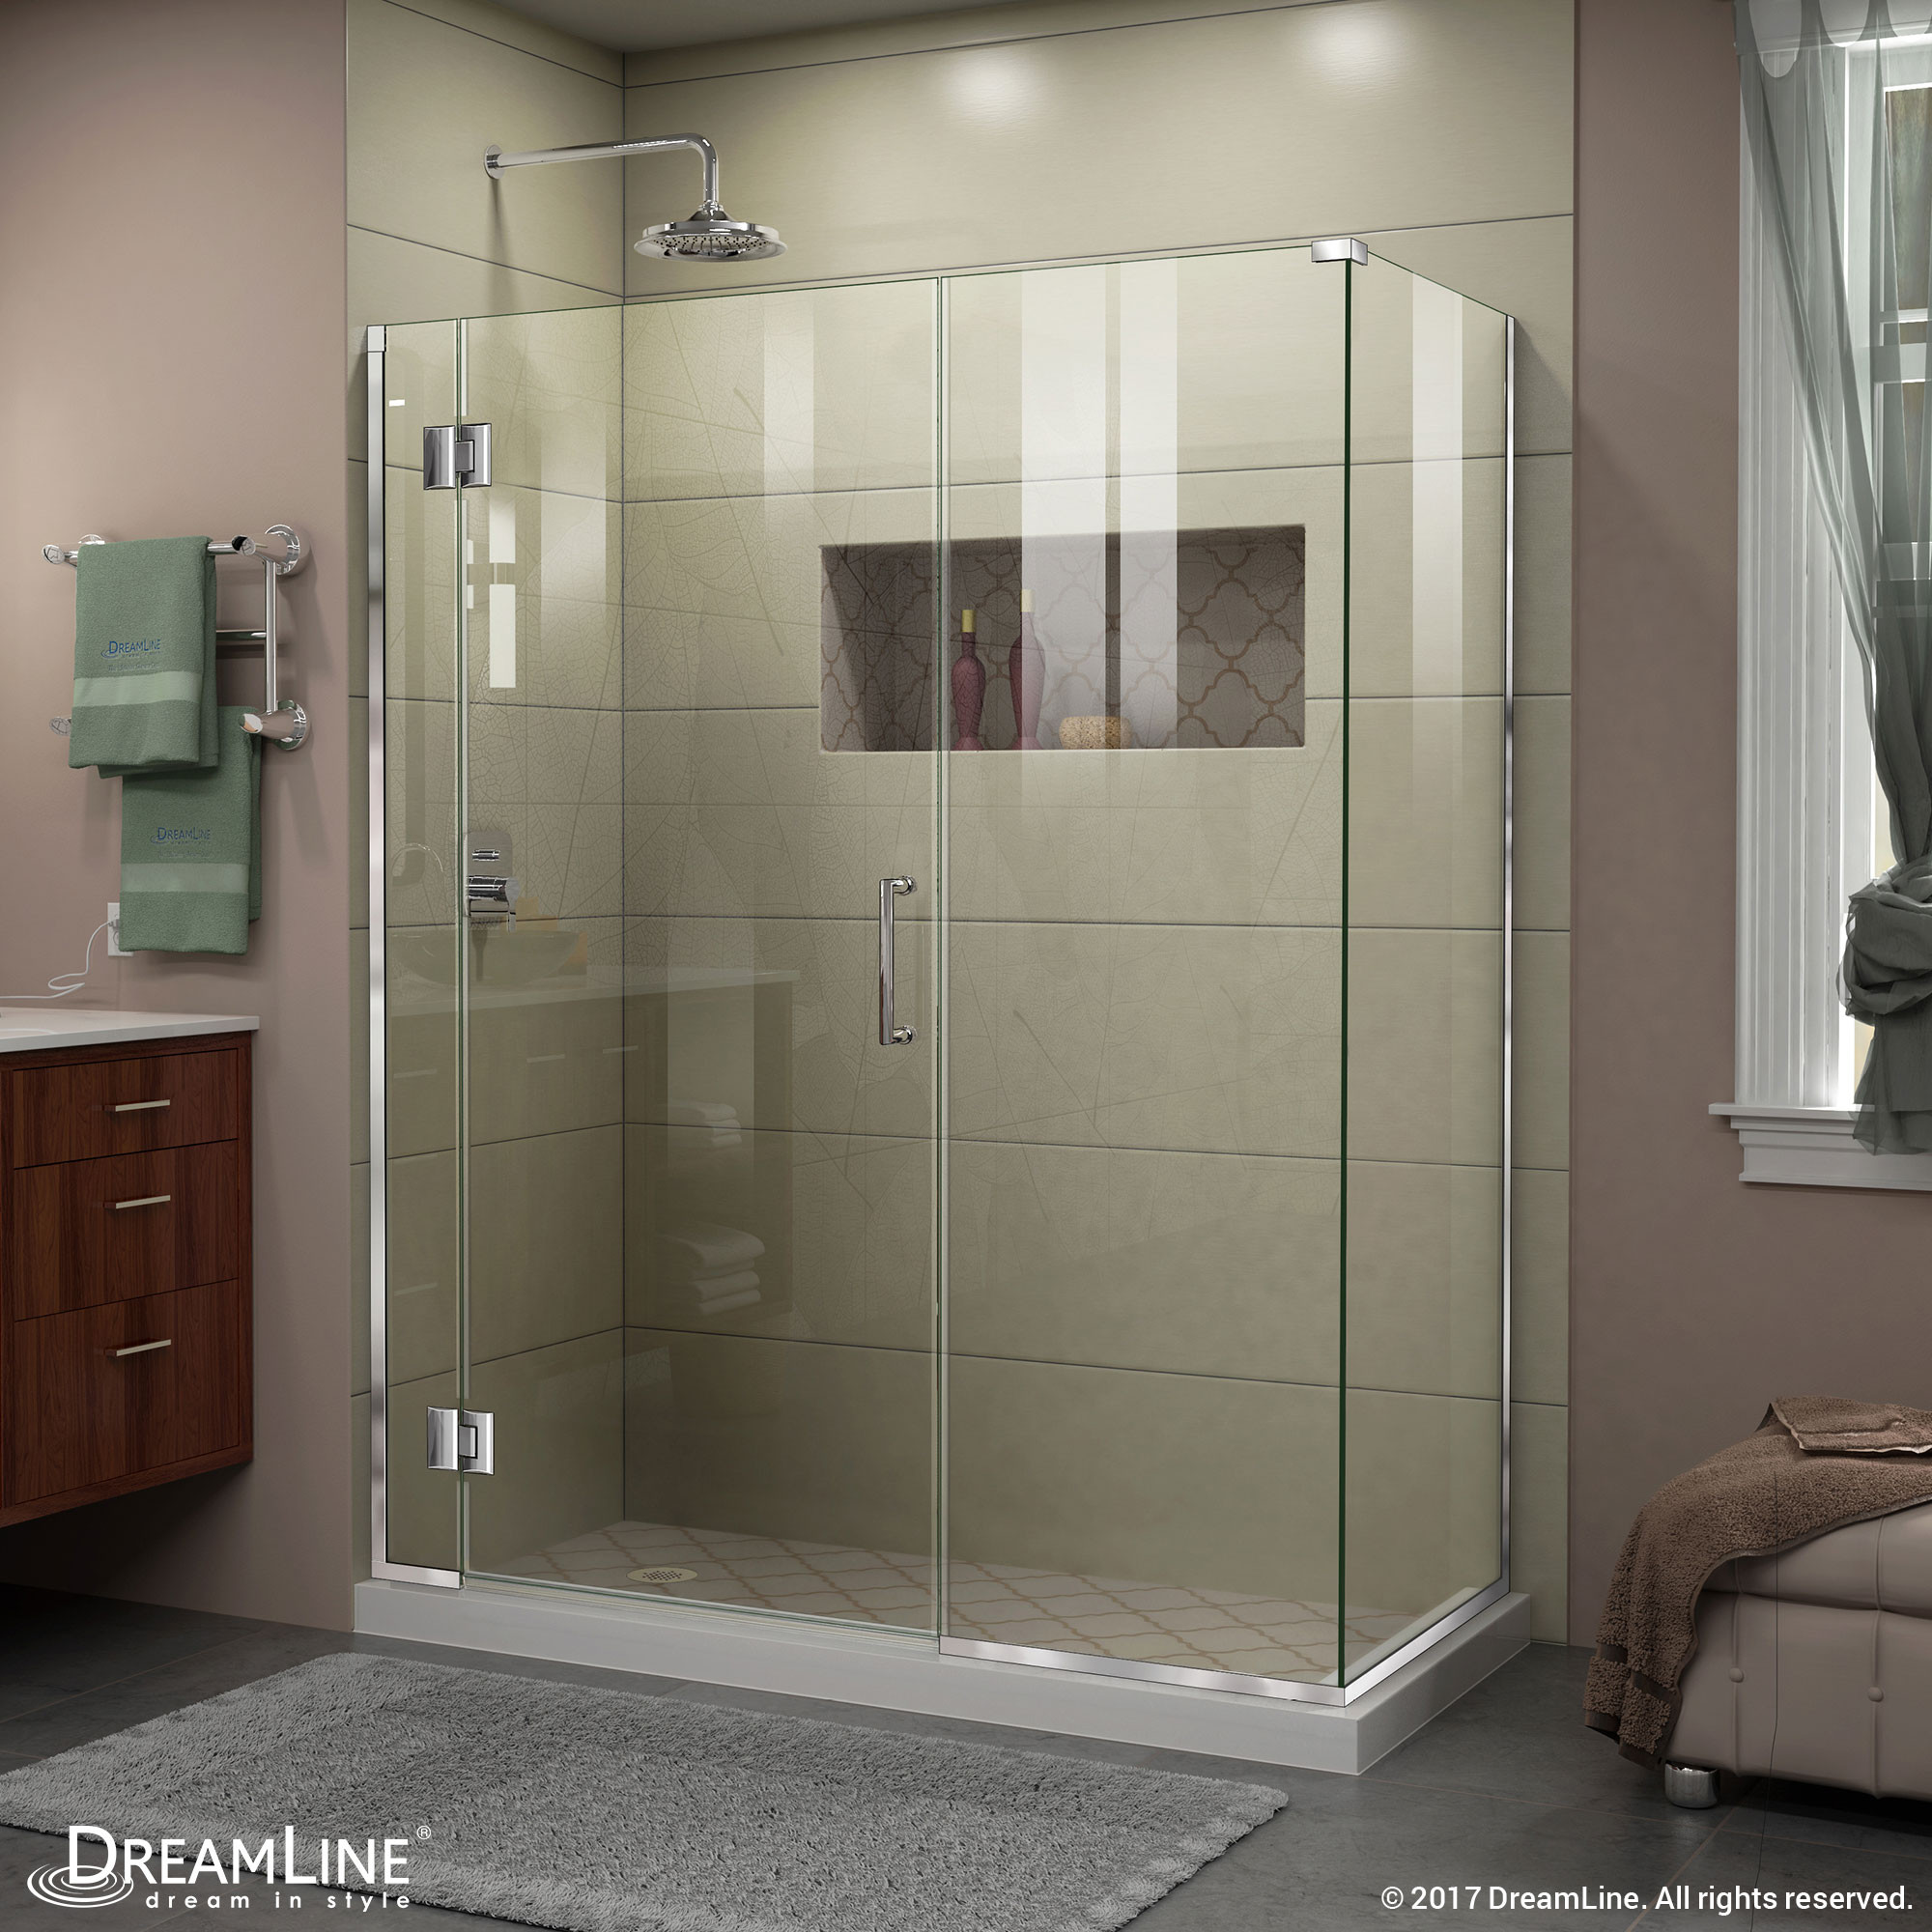 DreamLine E1292230 Unidoor-X 57 in. W x 30.375 in. D x 72 in. H Hinged Shower Enclosure